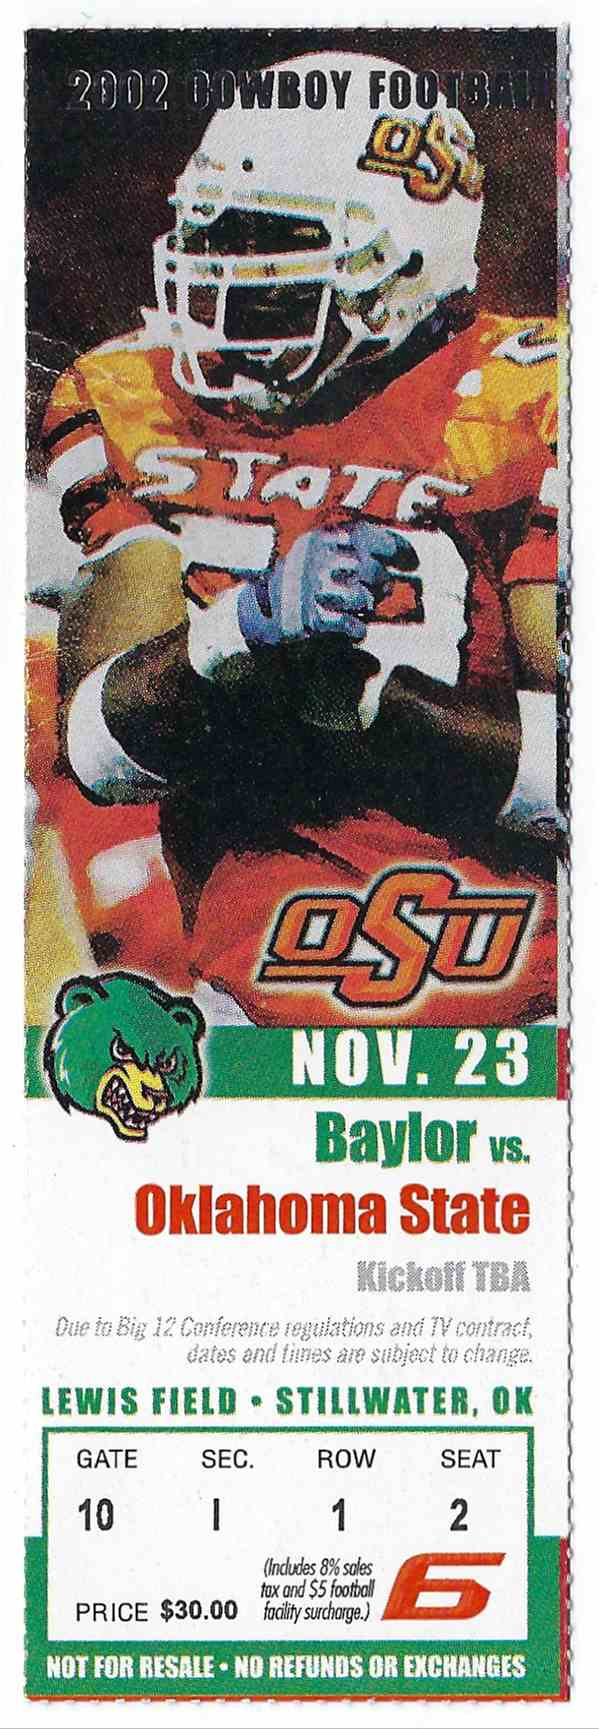 2002 College Football Ticket Stub Baylor Vs Oklahoma State card front image